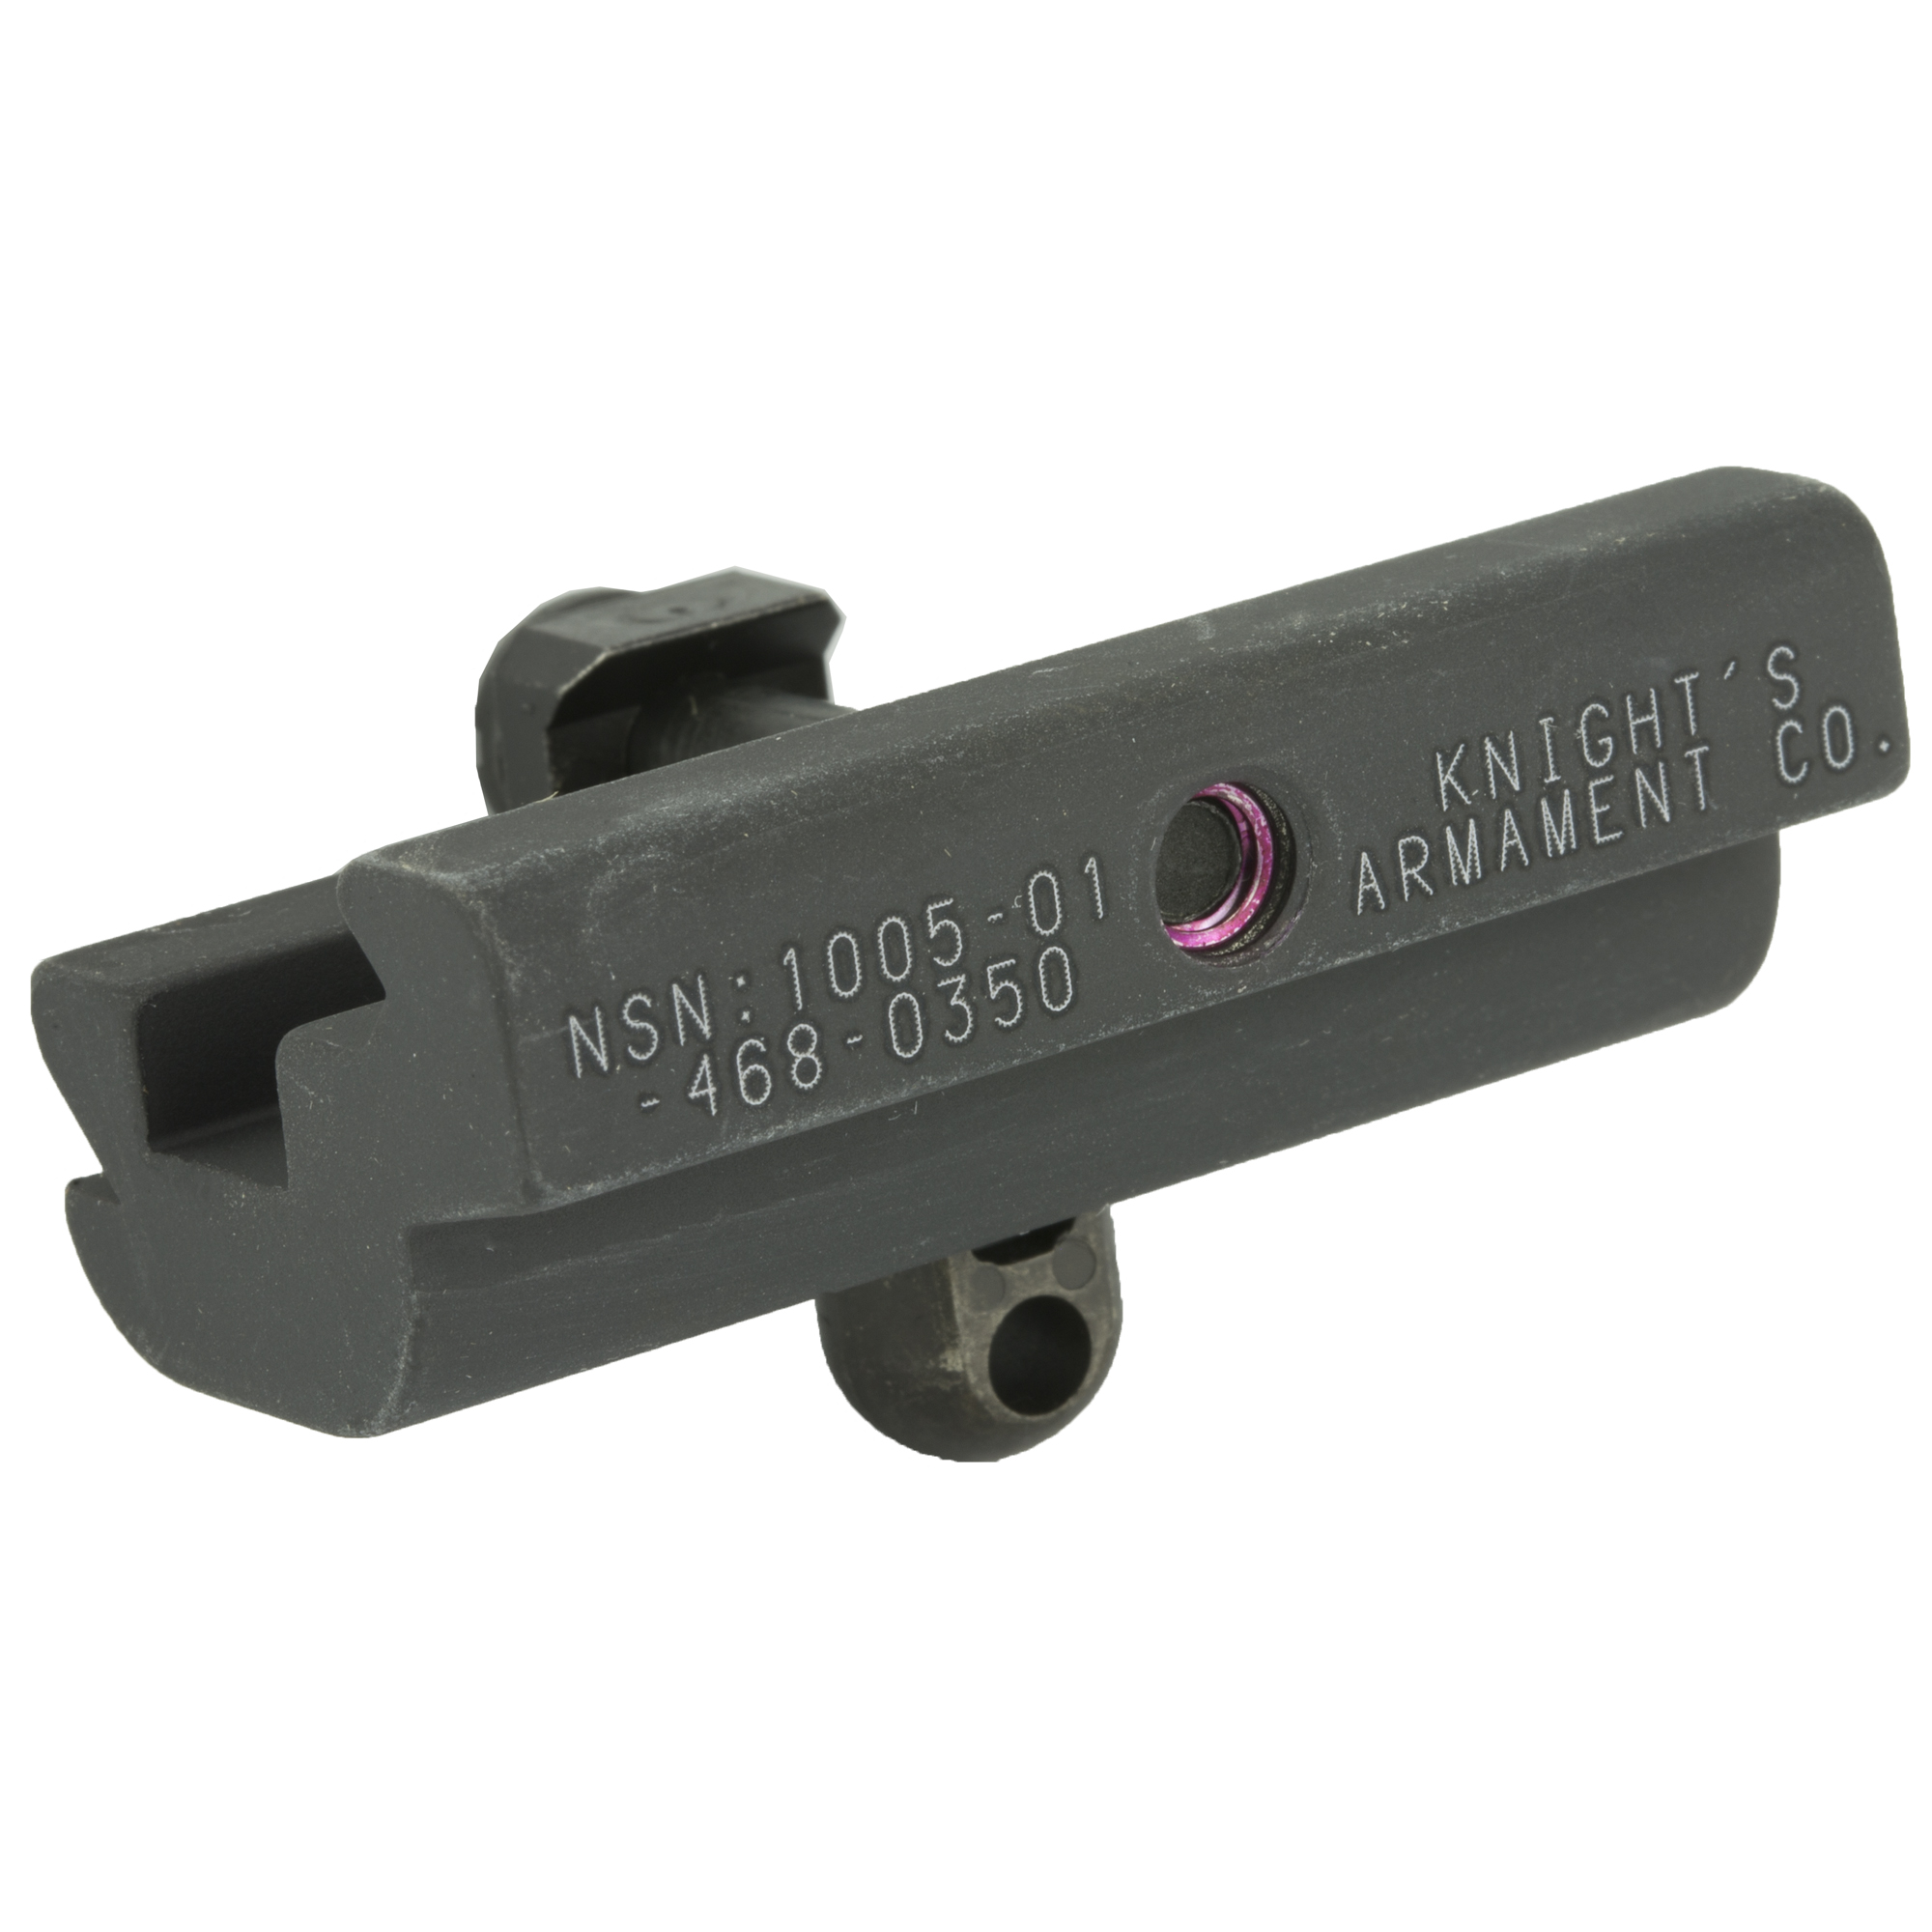 Knights Armament Co.'s MWS Bipod Adapter with QD stud fits any MIL-STD 1913 rail. Designed for installation on the lower rail.